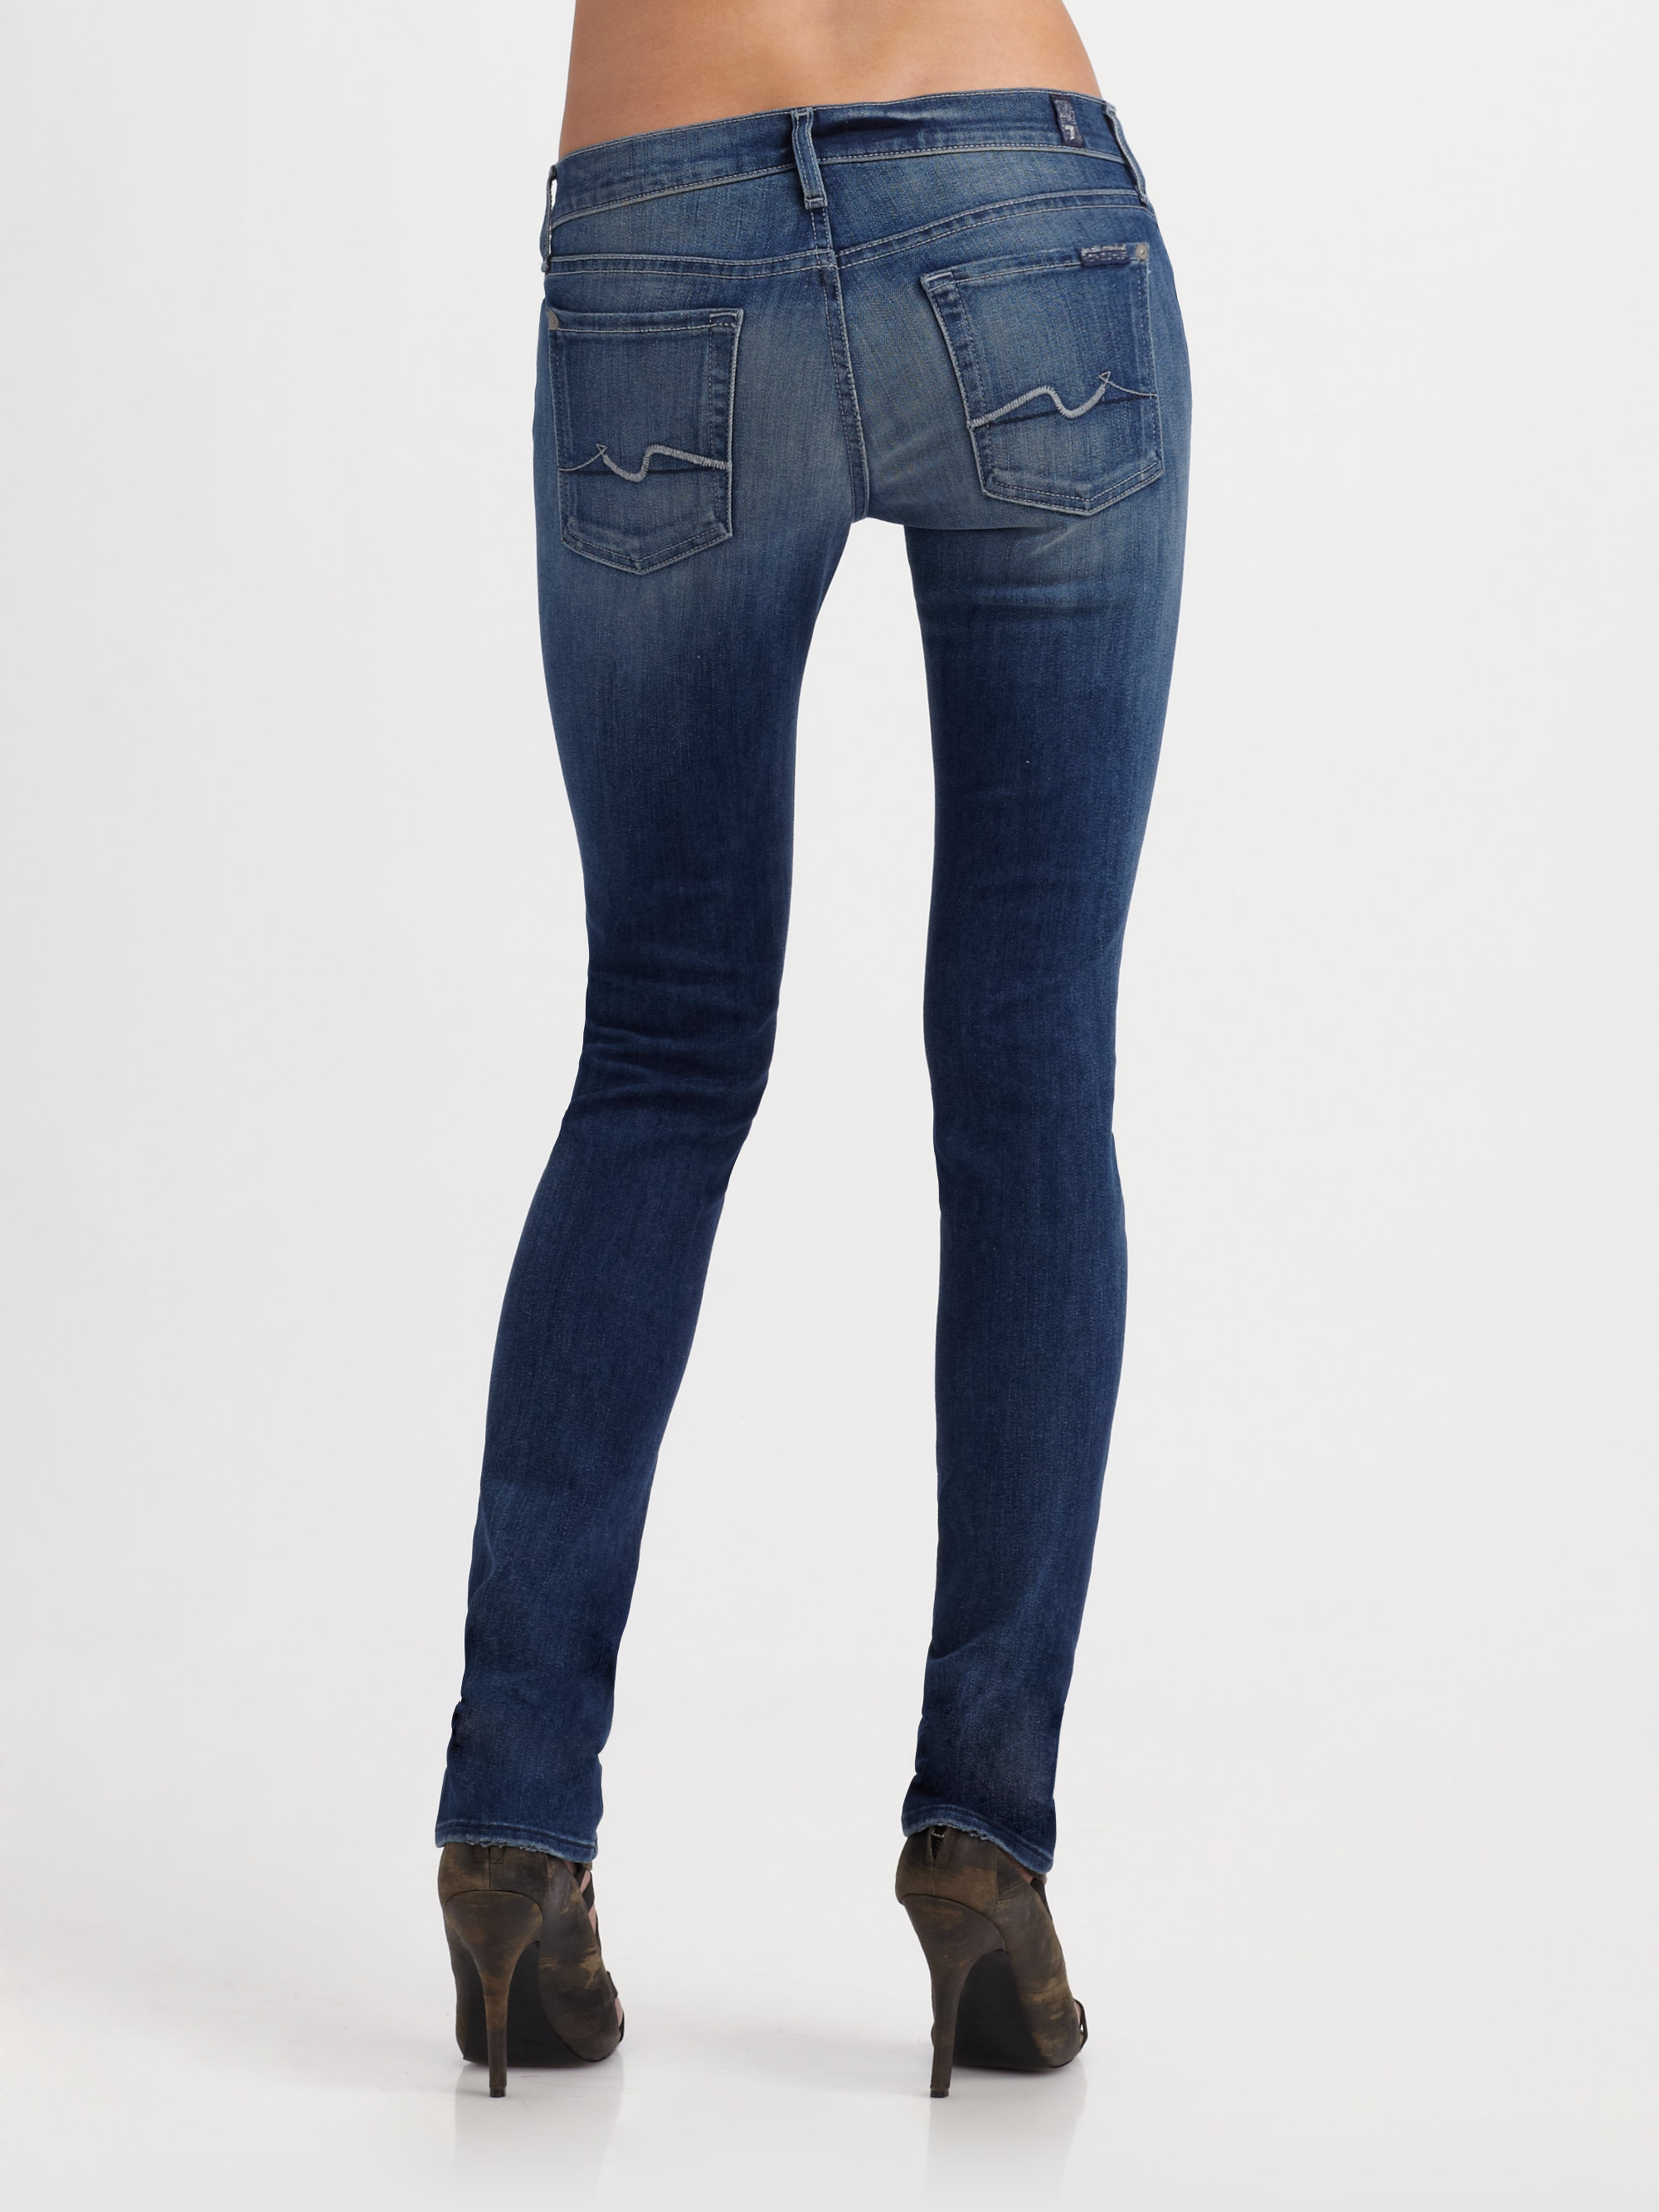 Lyst  7 For All Mankind Roxanne Skinny Jeans in Blue